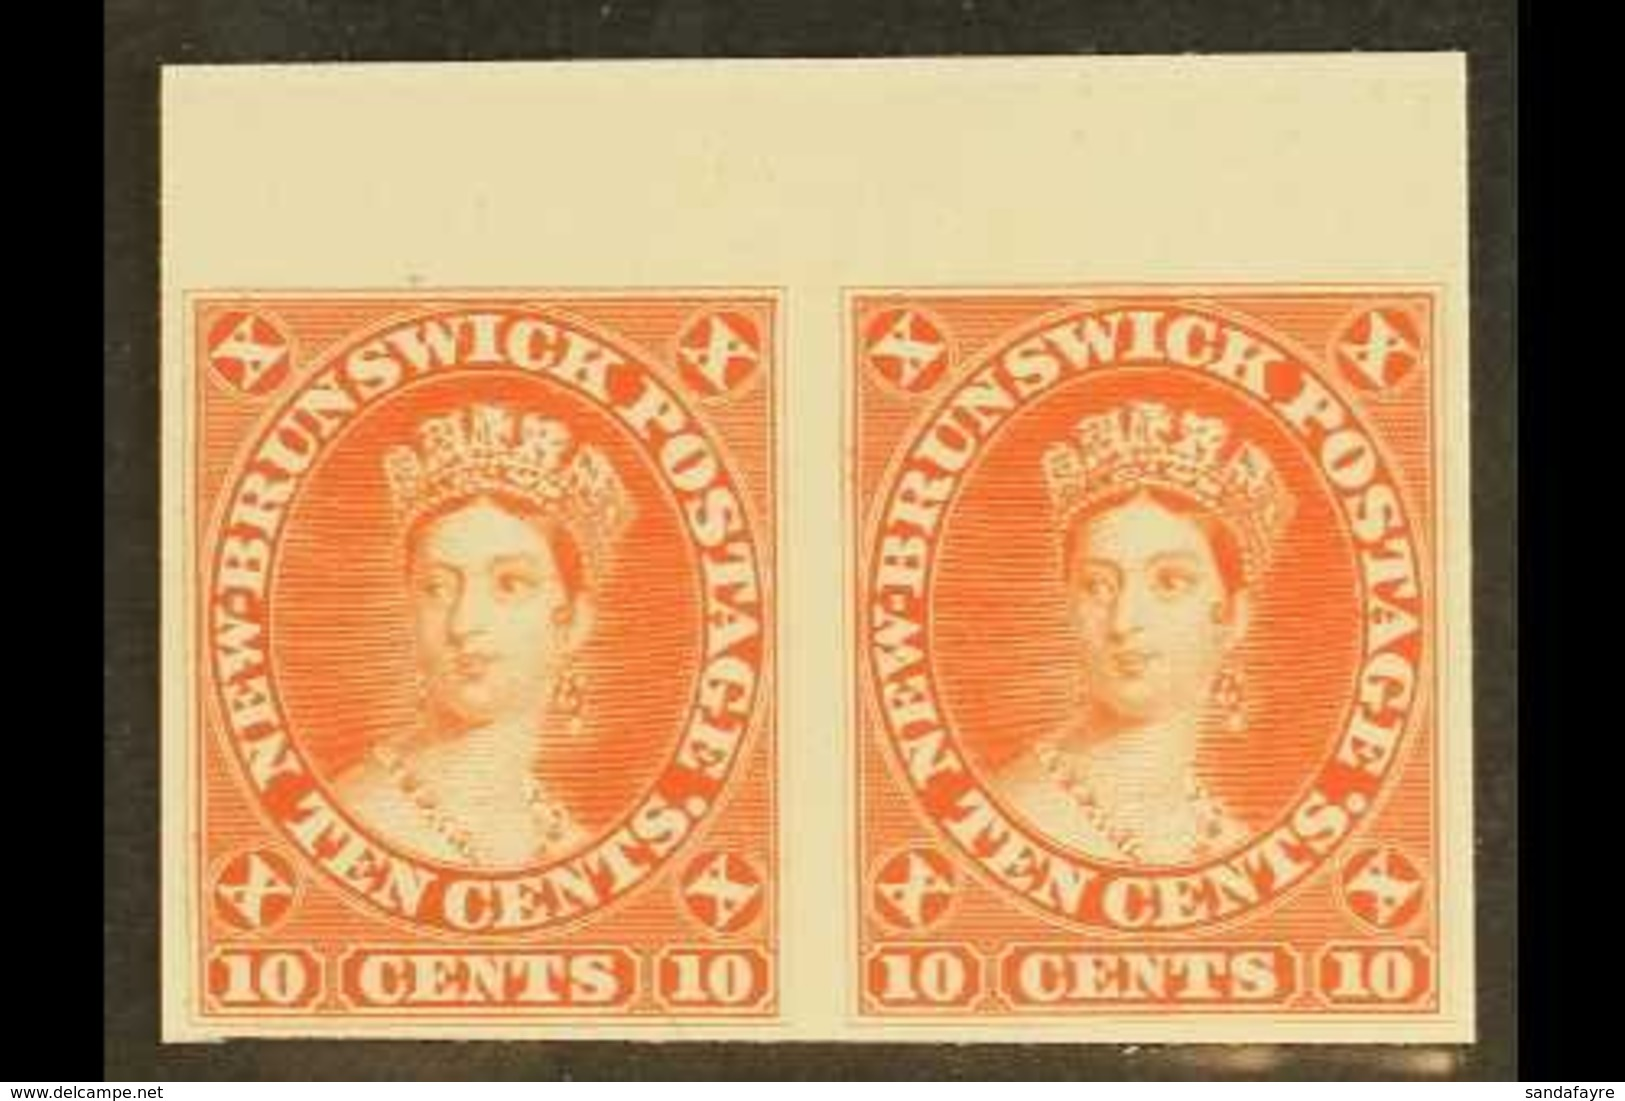 1860-63 10c Vermilion IMPERF PLATE PROOF PAIR On India Paper Mounted On Card. Lovely (pair) For More Images, Please Visi - New Brunswick